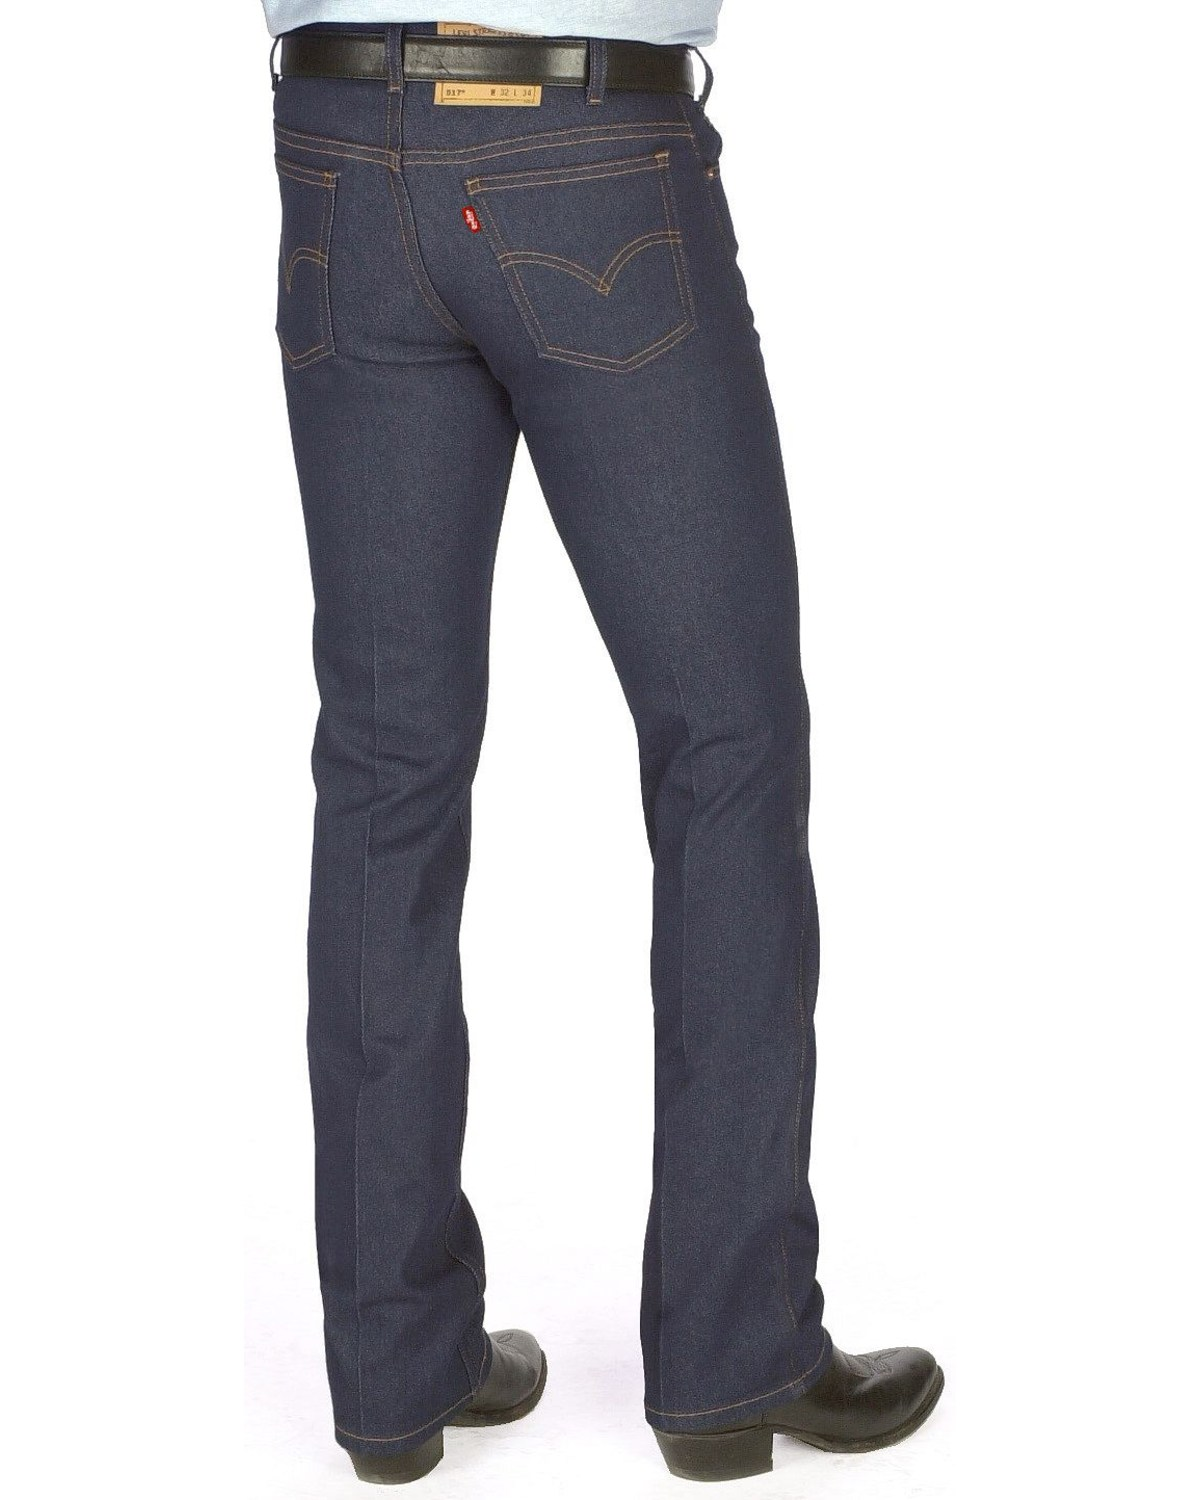 517 Best Images About 4th Of July Nail Art On Pinterest: Levi's Men's 517® Boot Cut Jeans